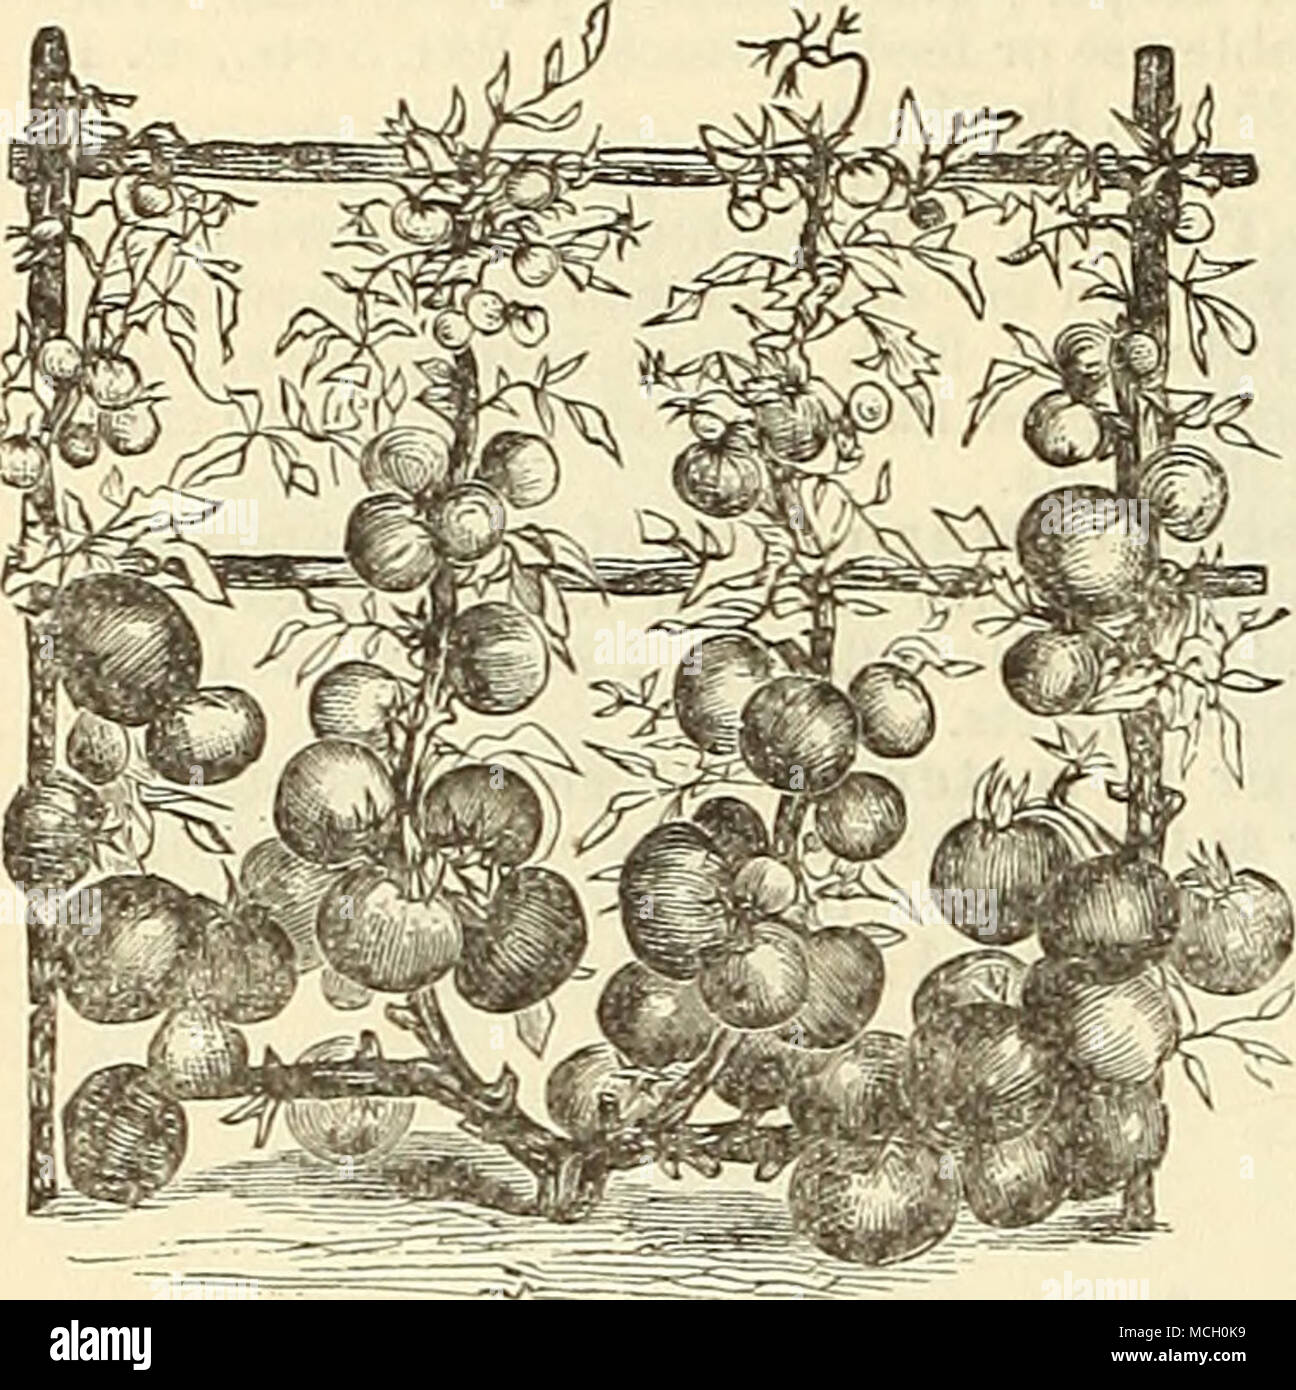 . IAL HERB SEEDS-Continued. ^Rosemary (Iiosemarinus officinalis). An aromatic and ornamental herb; 4 feet. Pkt. 10 cts., oz. 50 cts. â Rue (Ruta graveolens). For medicinal purposes, good for fowls for the croup; 3 feet. Pkt. 5 cts., oz. 25 cts. *Sage (Salvia officinalis). The tender leaves and tops are used in sausage, stuffing and sauces; 18 inches. Pkt. 5 cts., oz. 25 cts. Savory, Summer (Satureia hortensis). For seasoning purposes ; 1 foot. Pkt. 5 cts., oz. 25 cts. *Savory, Winter (Satureia montana). For same use as the above. Pkt. 10 cts., oz. 40 cts. *Tansy (Tanacetwm, vulgaris). For medi Stock Photo